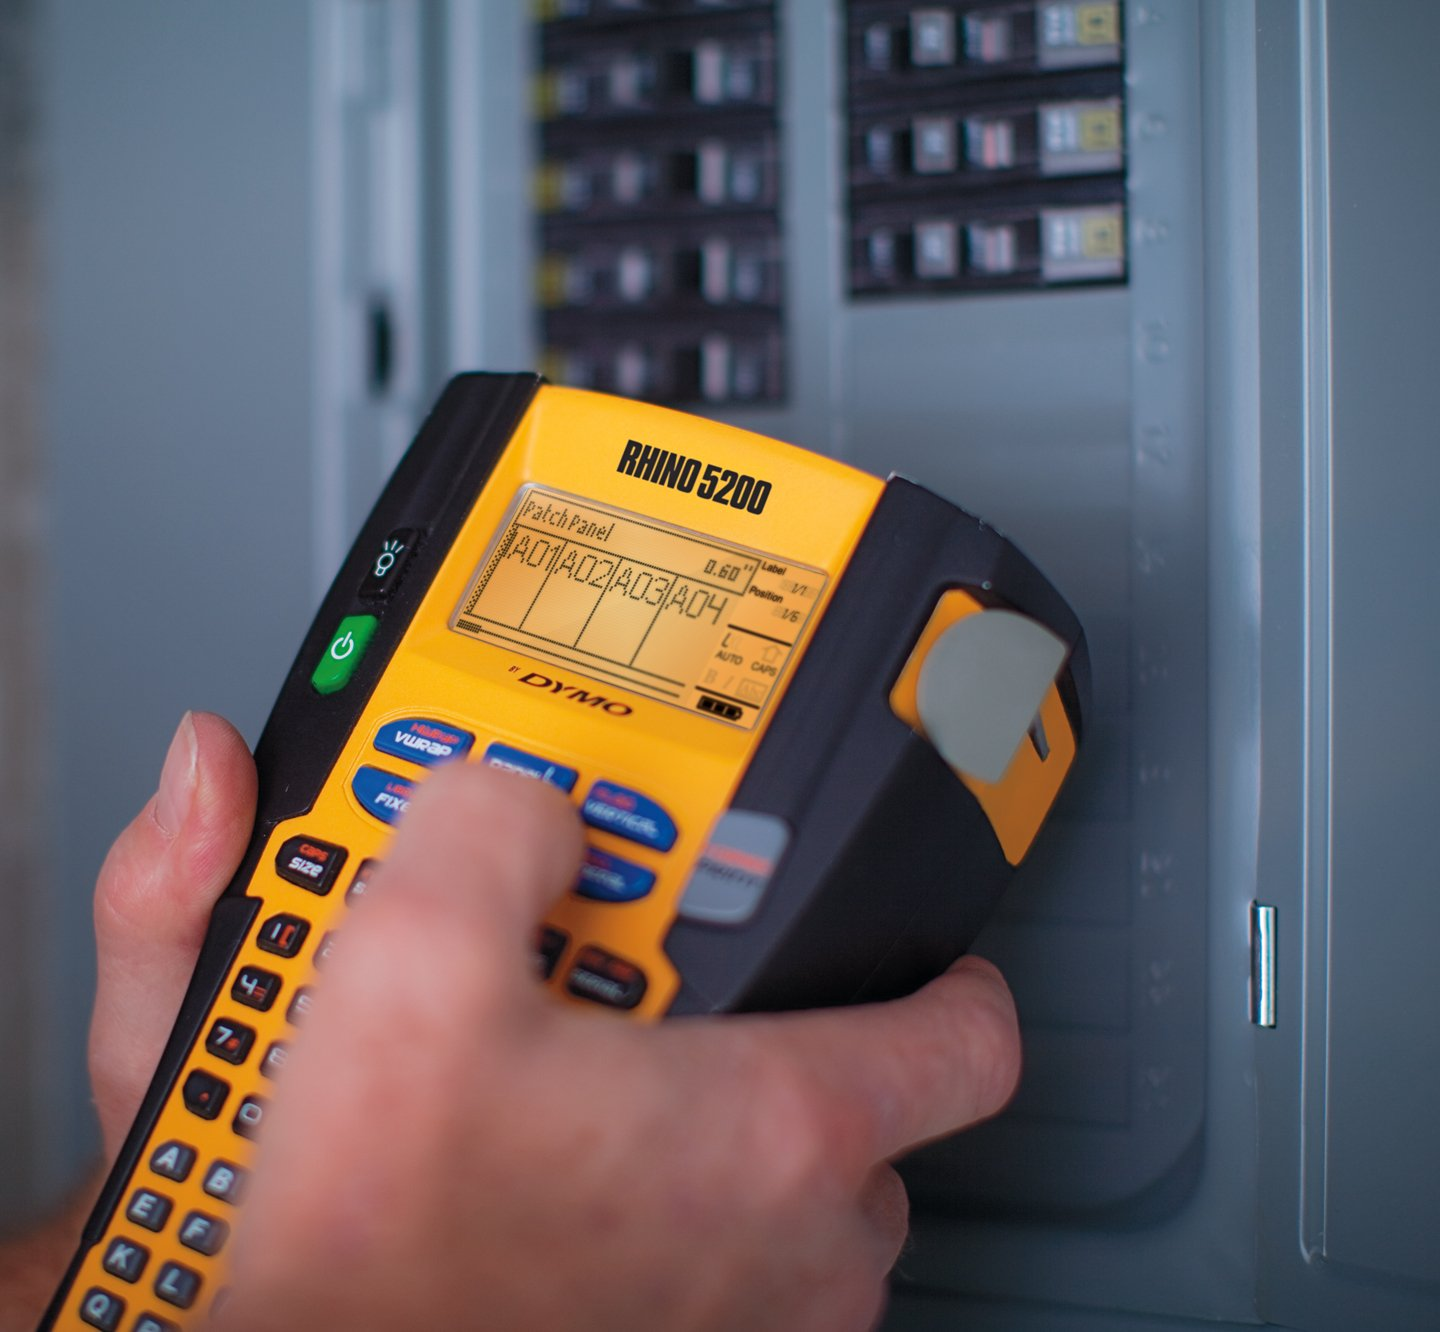 A person using a Rhino 5200 to create labels for a patch panel.